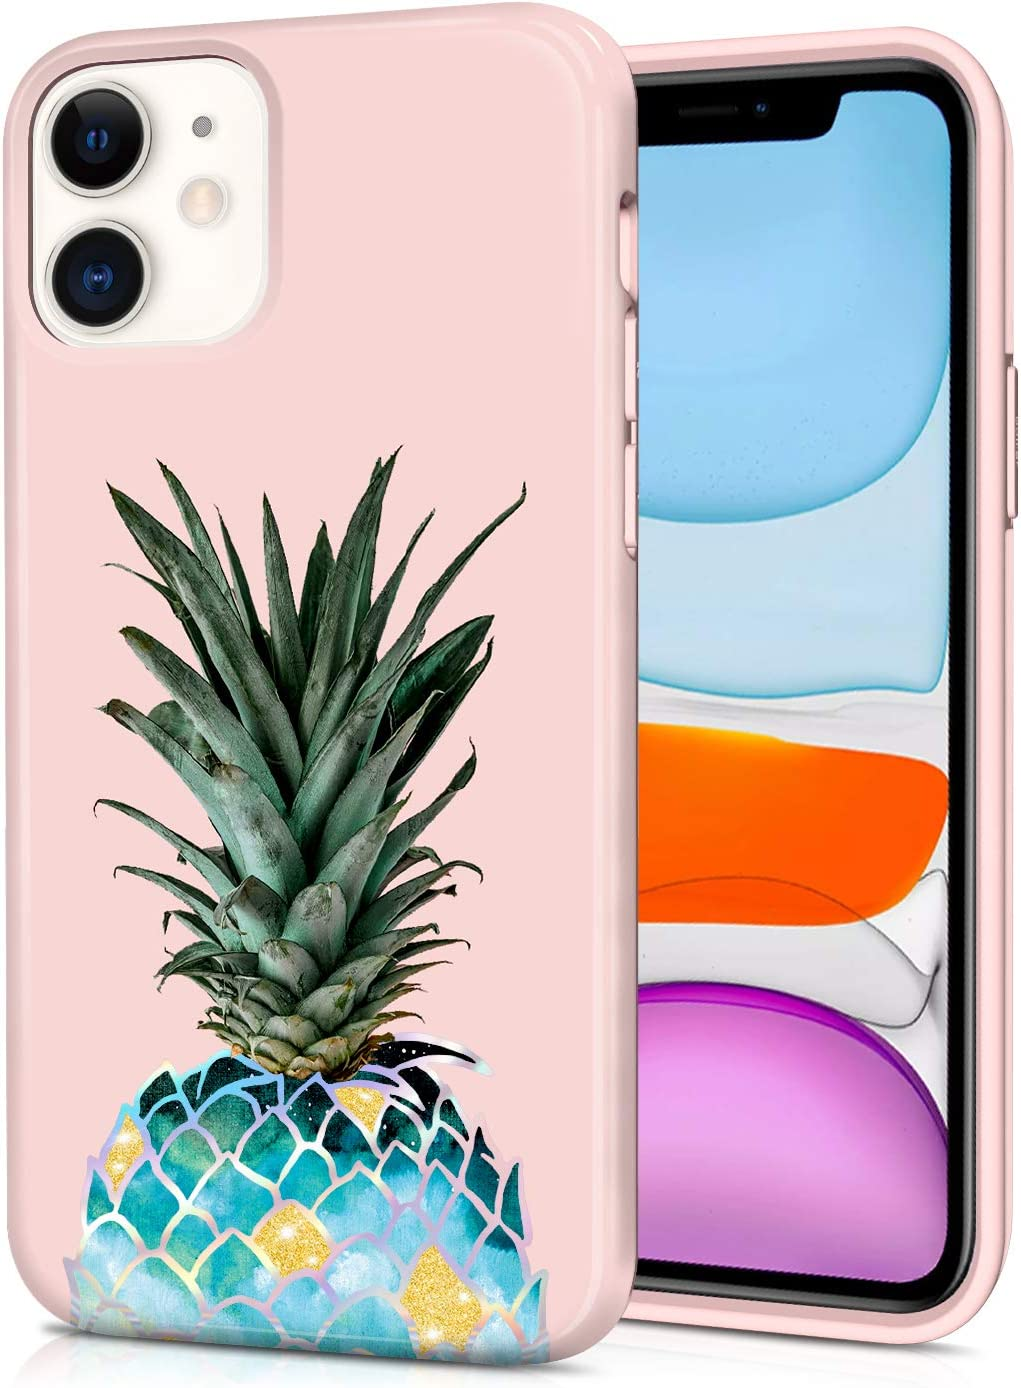 CAOUME iPhone 11 Case Pineapple Design Sparkly Glitter Protective Stylish Slim Thin Cute Holographic Cases for Apple Phone 11 (2019 Release), Soft TPU Silicone Bumper Defender Camera Screen